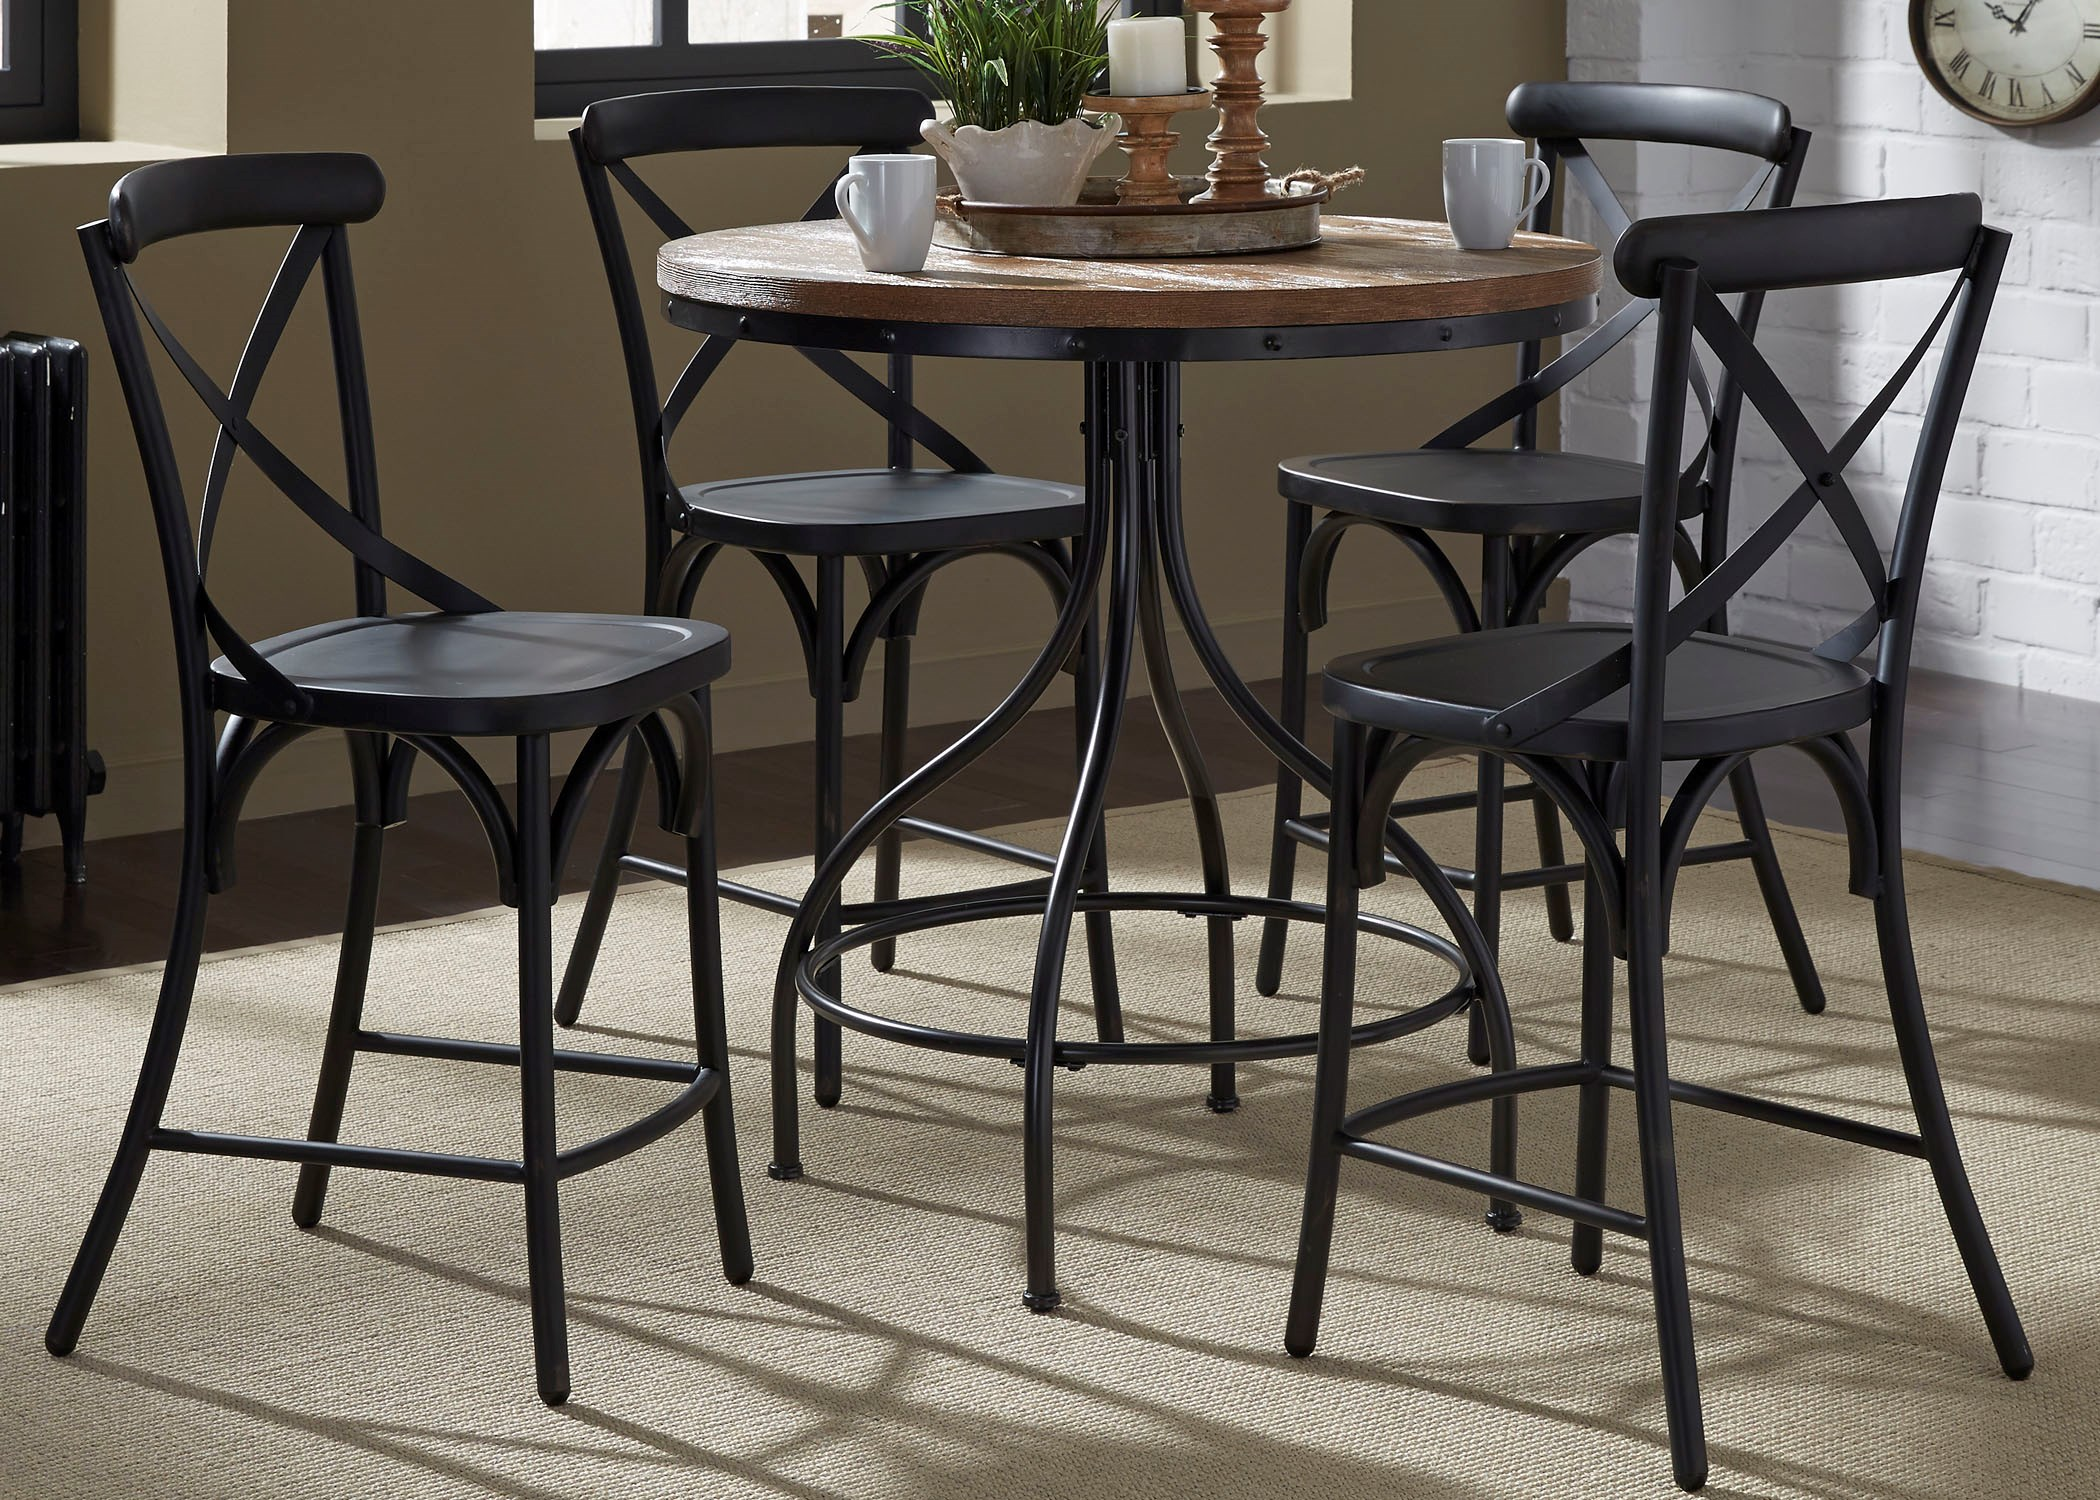 Liberty Furniture Vintage Dining Series 5 Piece Gathering Table And X Back  Counter Chair